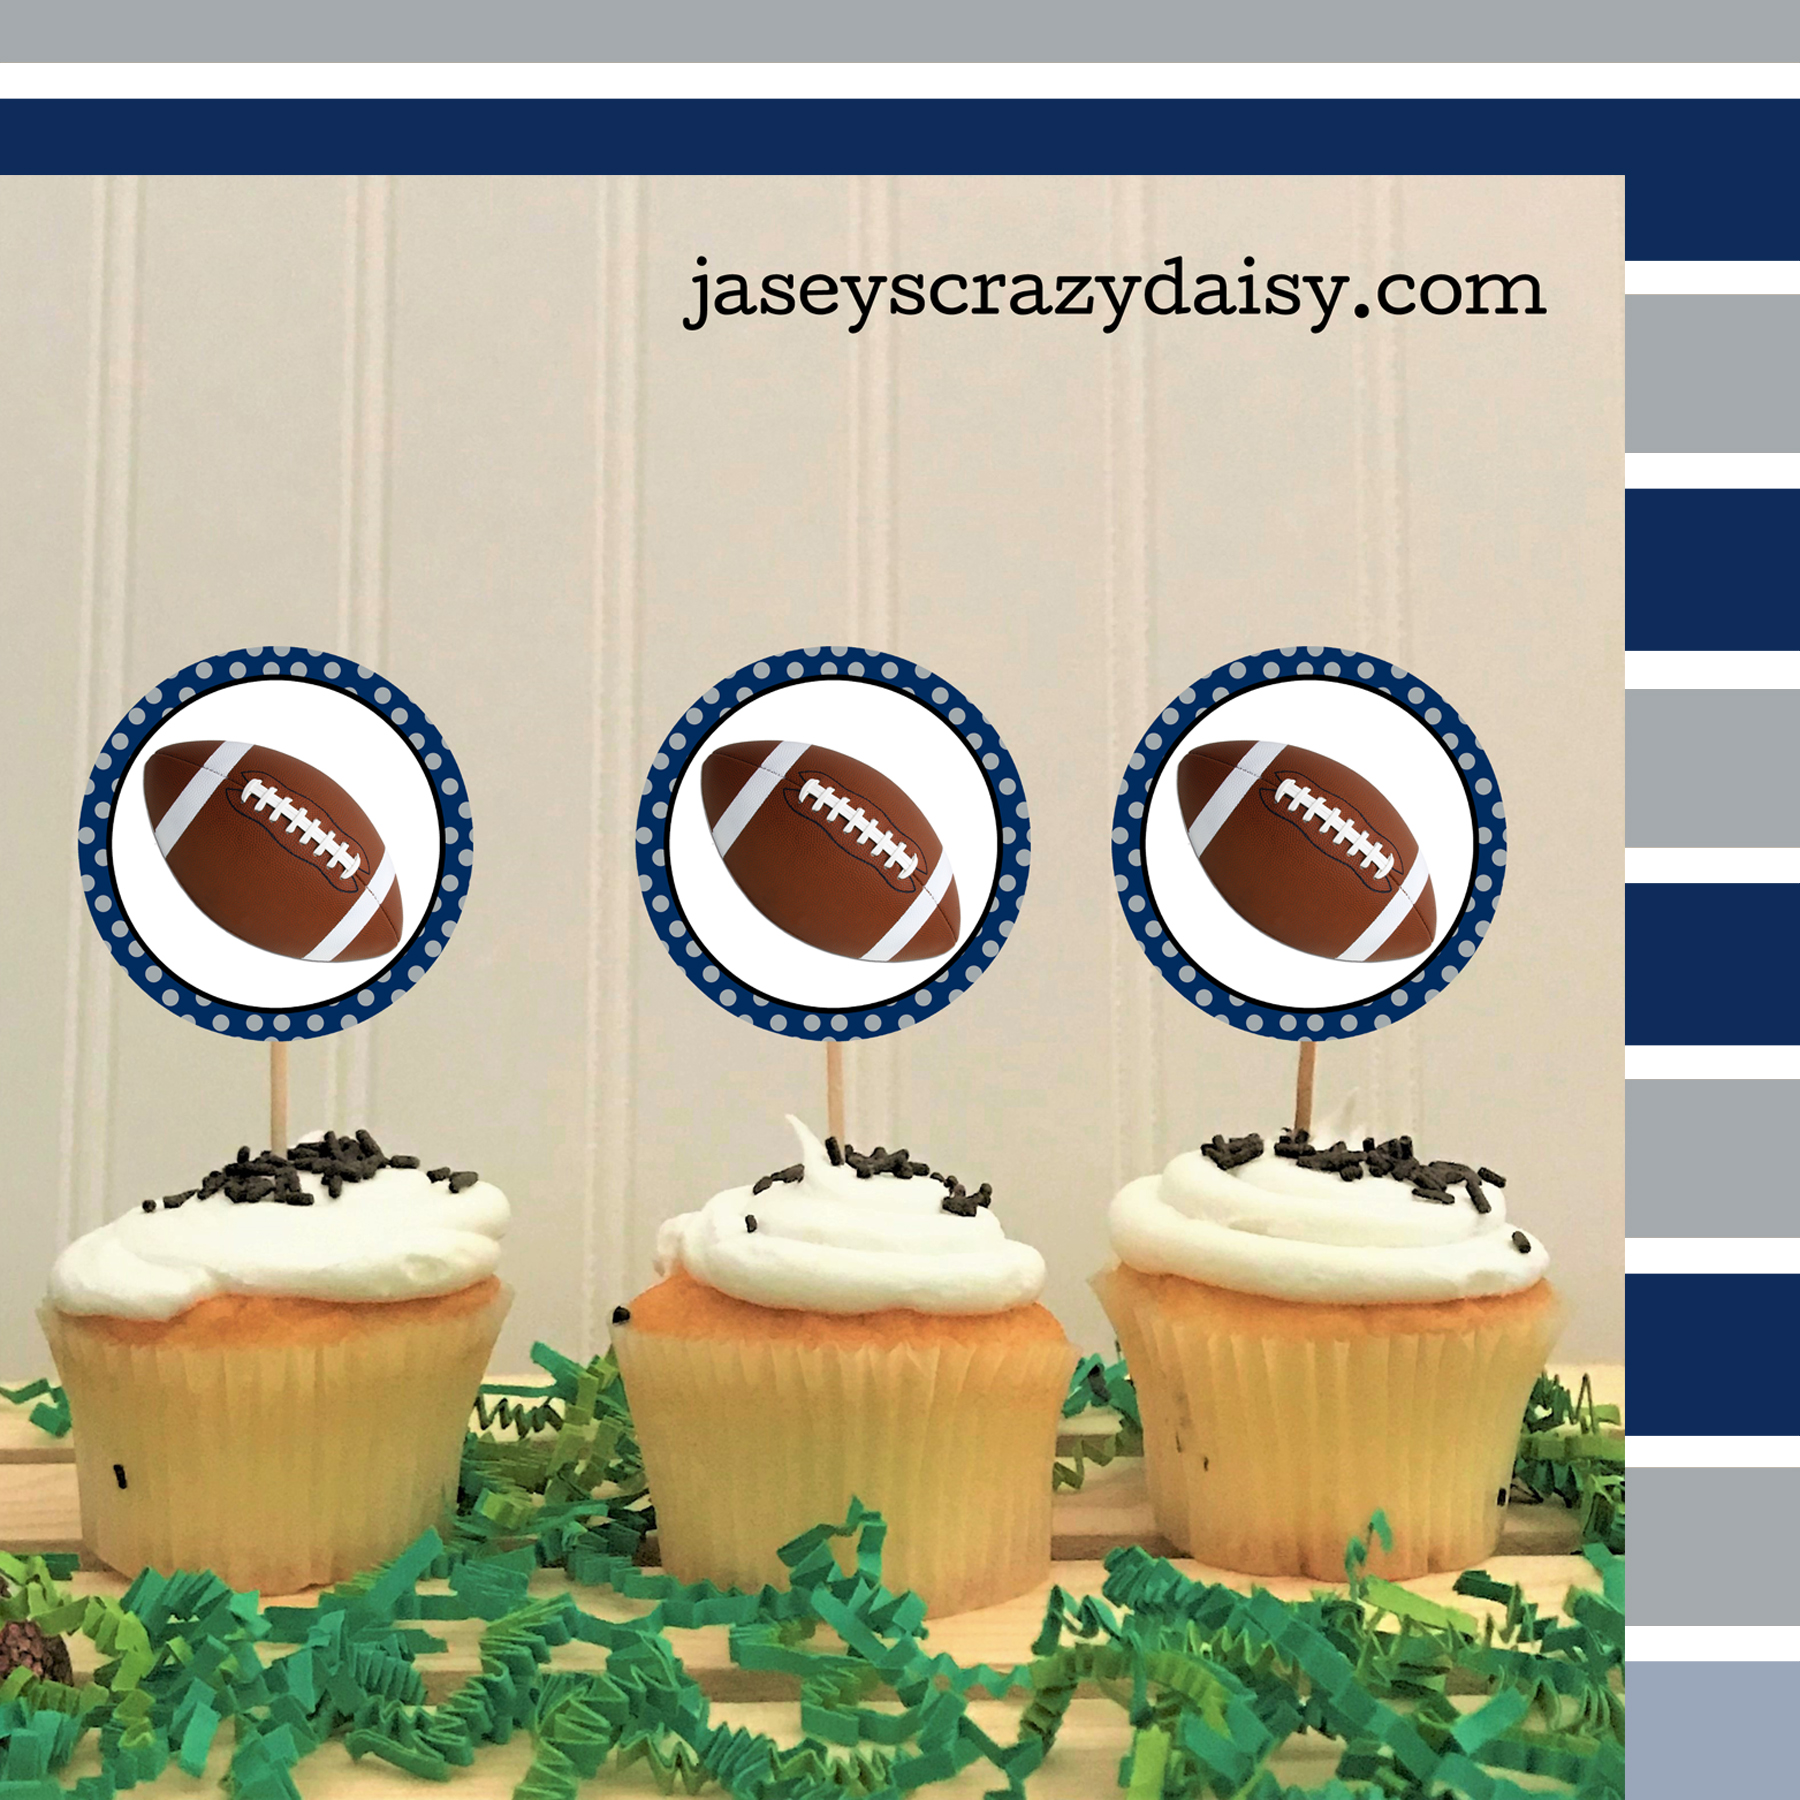 photograph relating to Printable Cupcakes Toppers identify Do it yourself Printable Blue and Silver Soccer Cupcake Toppers - Immediate Obtain - Jaseys Insane Daisy